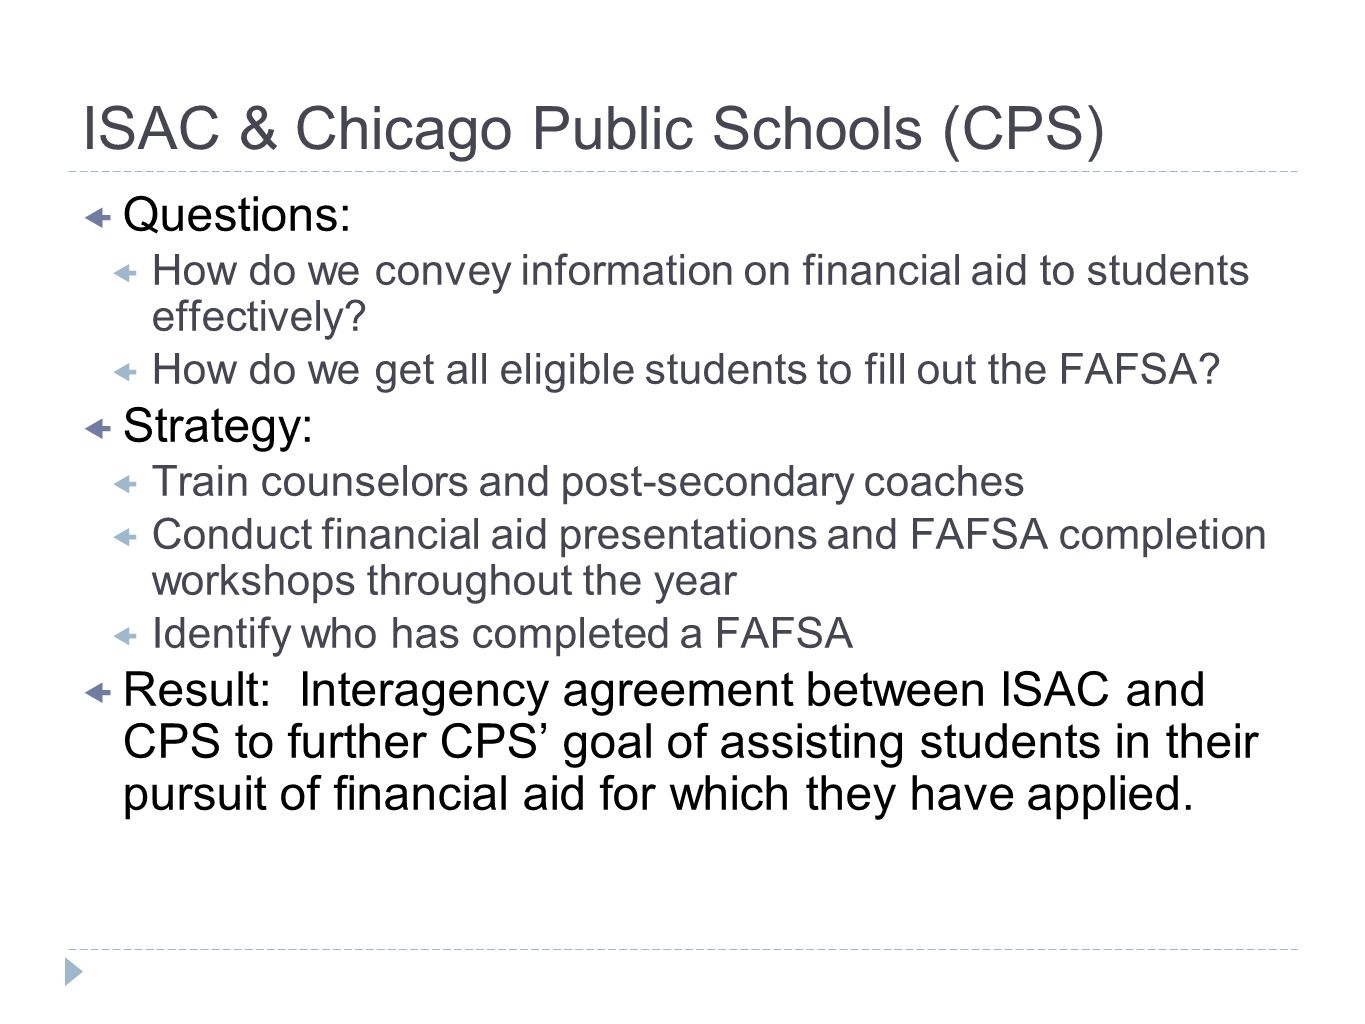 ISAC & Chicago Public Schools (CPS) Questions: How do we convey information on financial aid to students effectively? How do we get all eligible stude